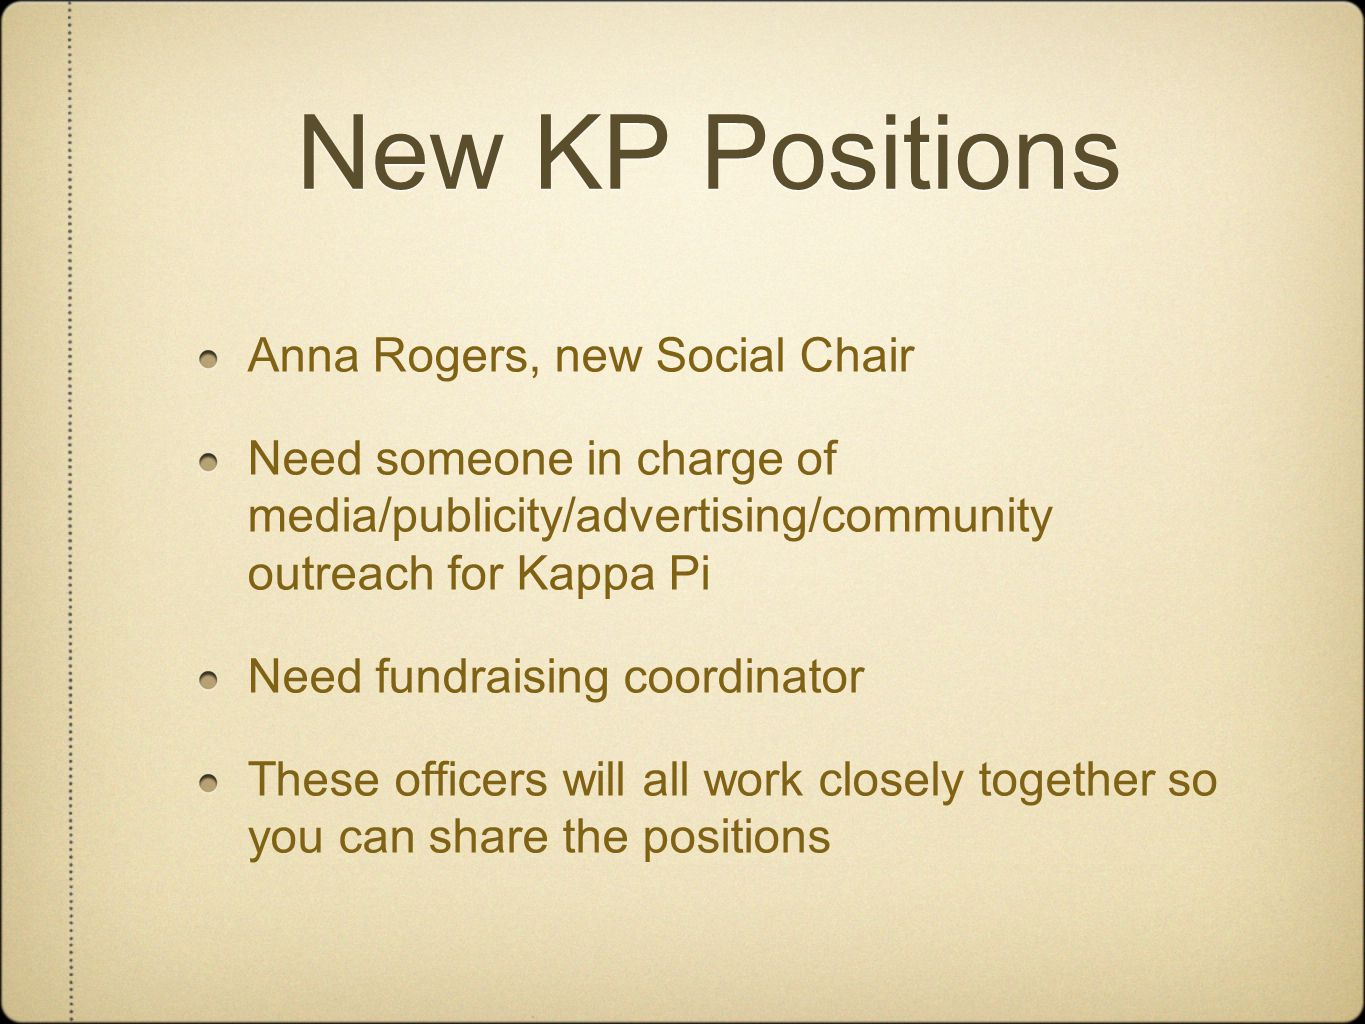 New KP Positions Anna Rogers, new Social Chair Need someone in charge of media/publicity/advertising/community outreach for Kappa Pi Need fundraising coordinator These officers will all work closely together so you can share the positions